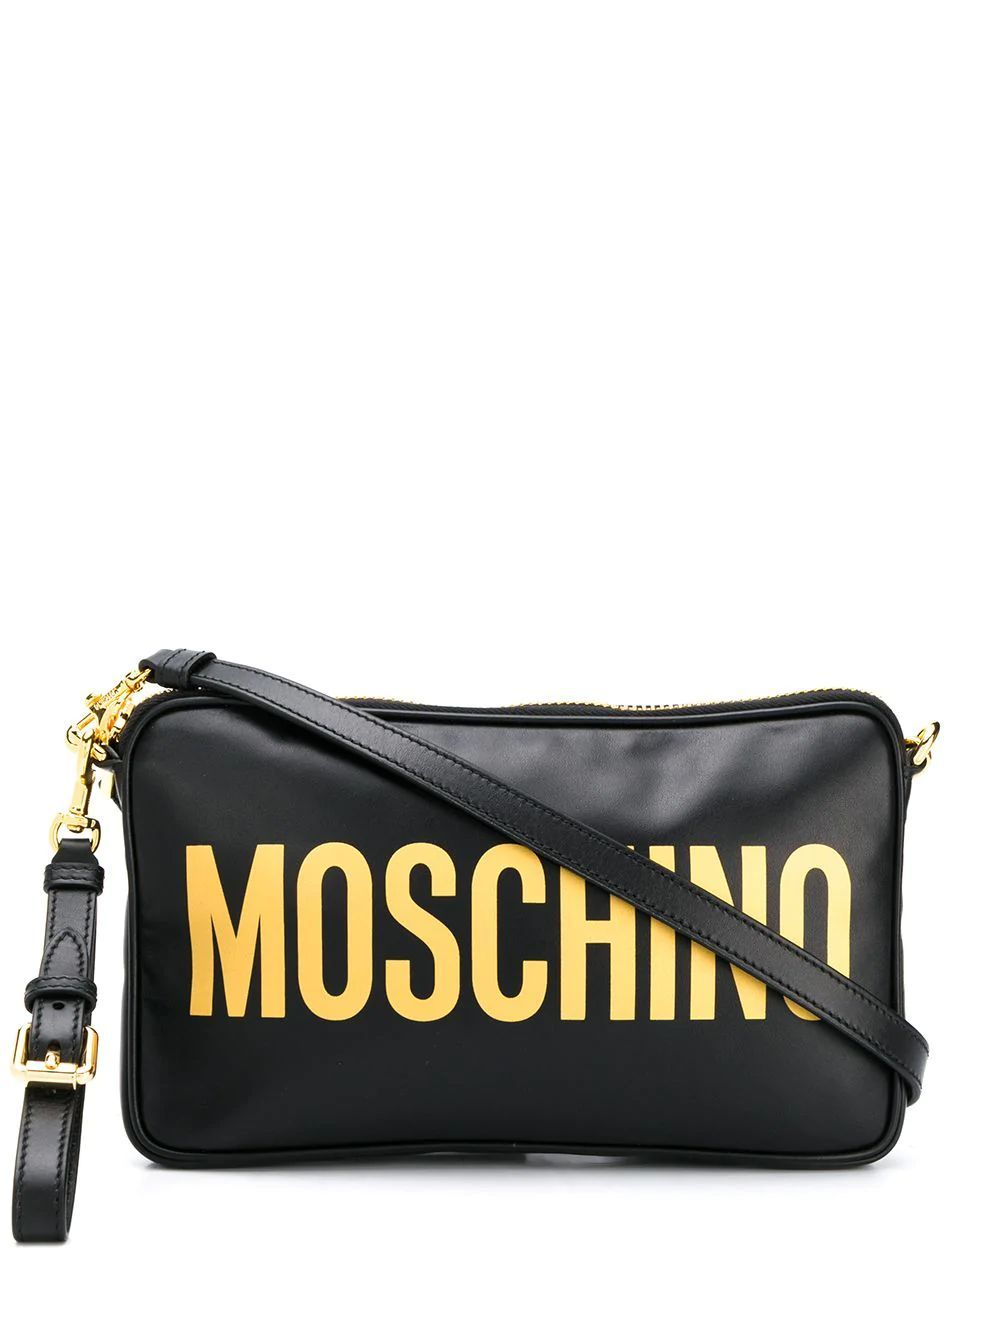 MOSCHINO WOMEN'S A741780012555 BLACK LEATHER SHOULDER BAG